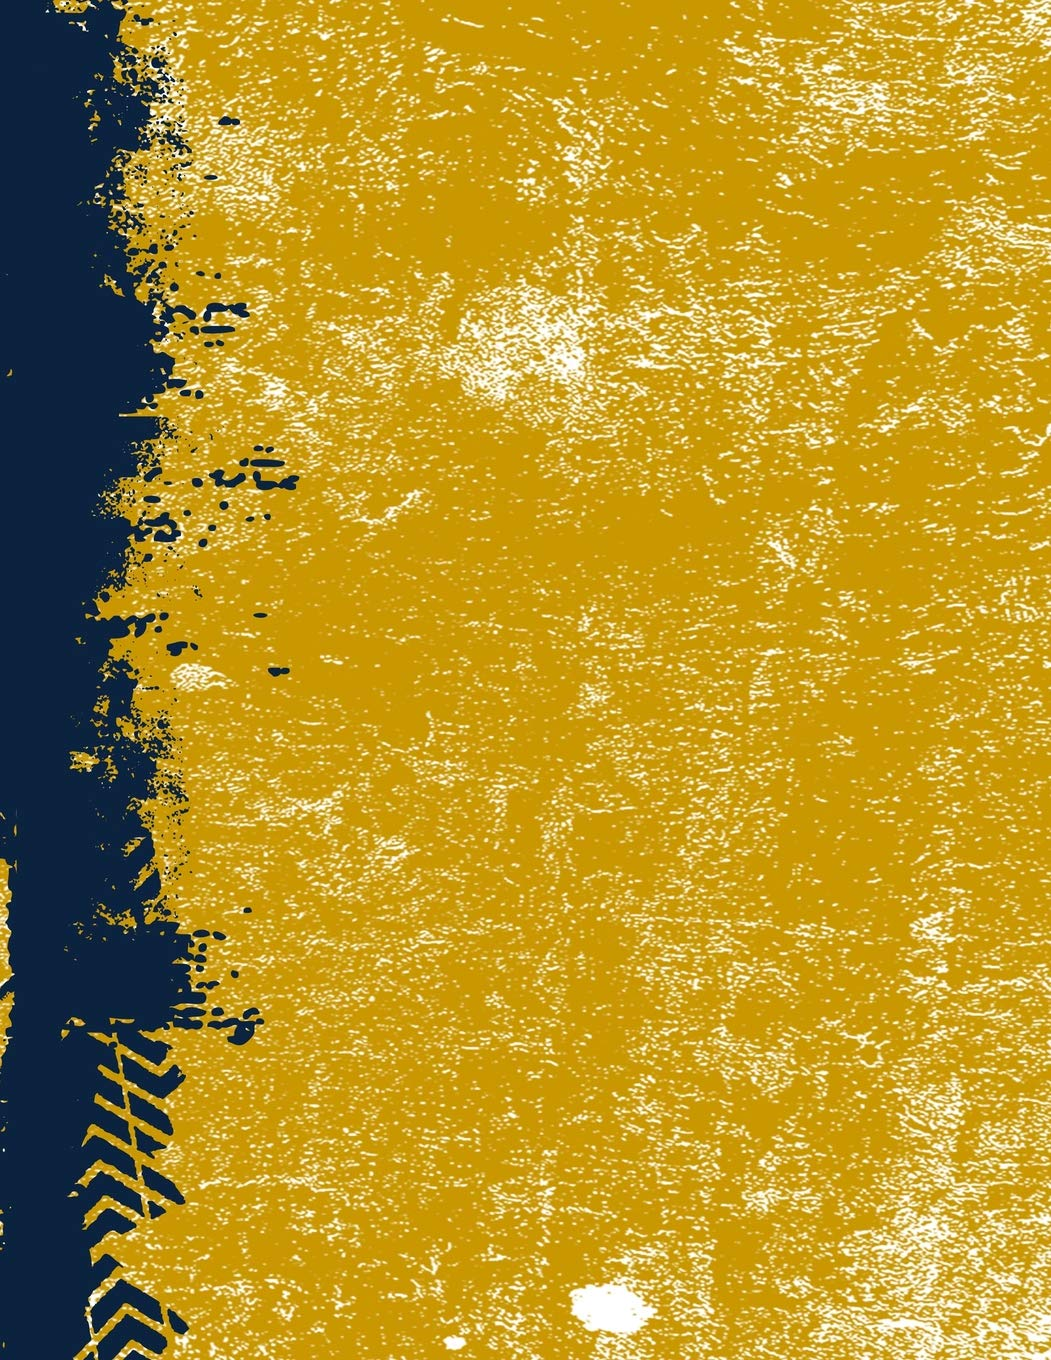 Blue And Gold 8 5 X 11 Lined Blank Grunge Team Color